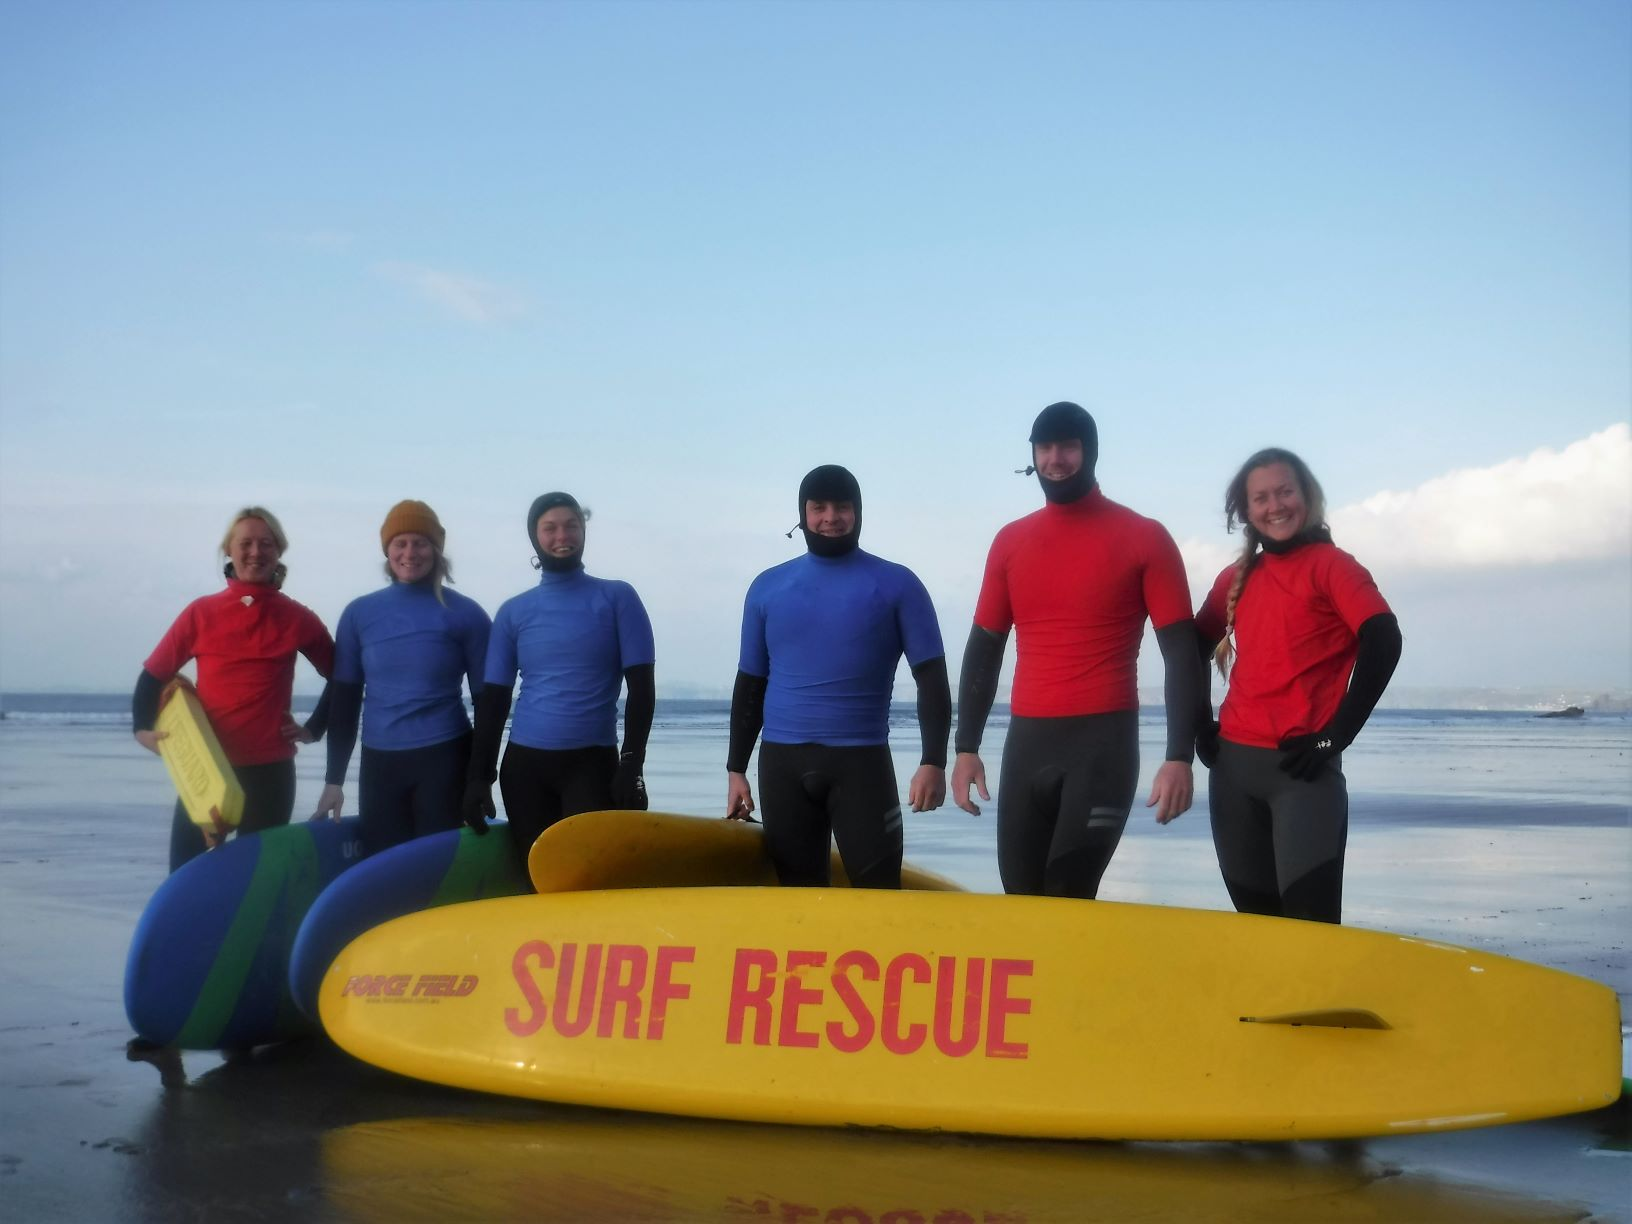 Lifesaving / Rescue Courses